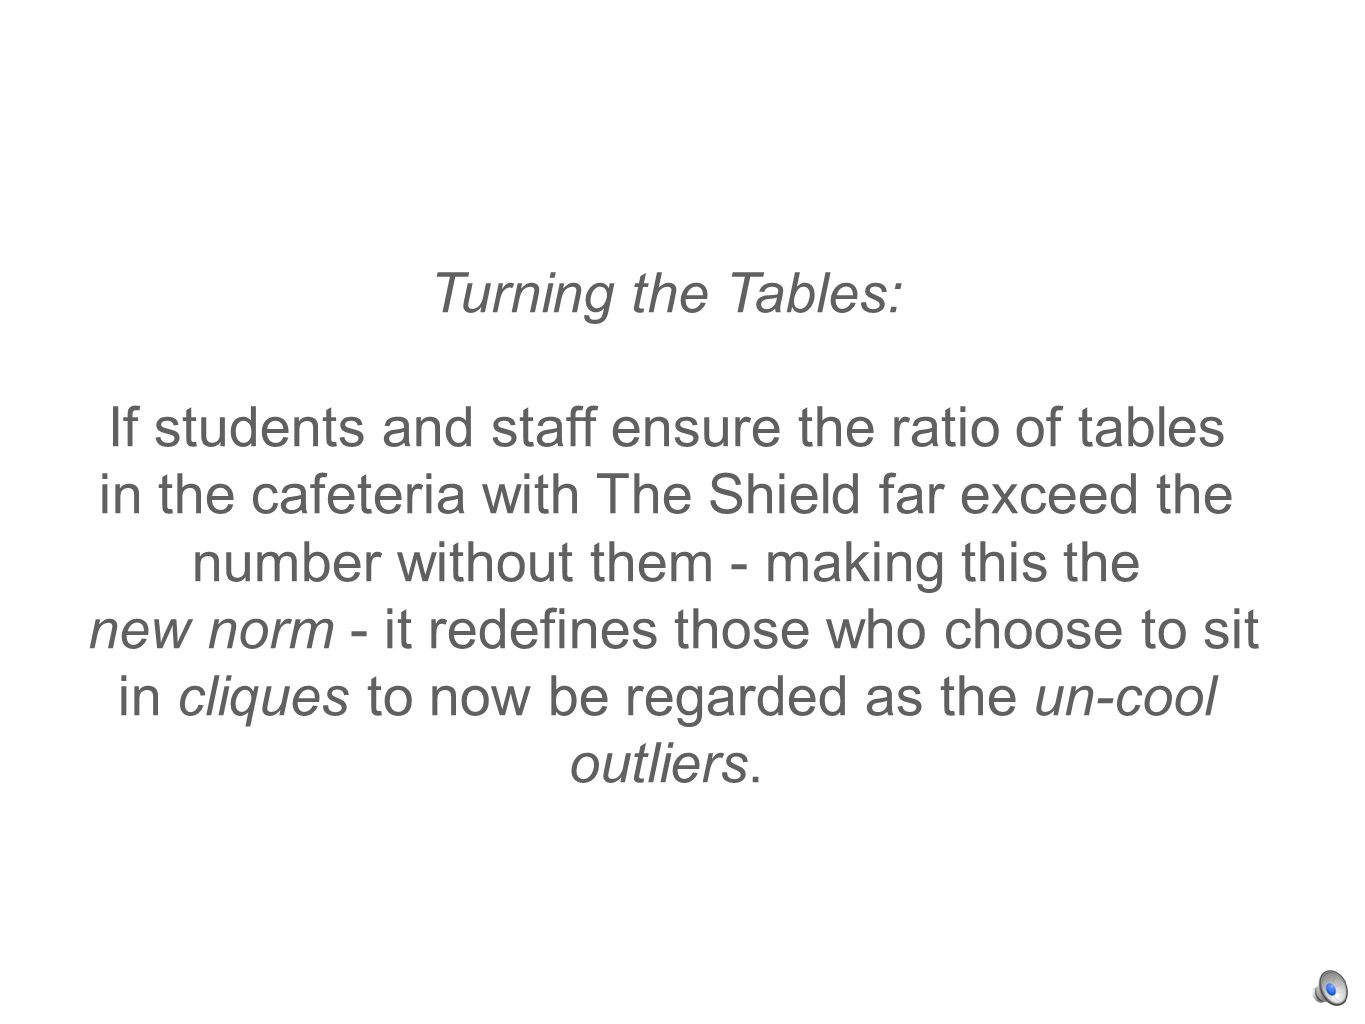 Turning the Tables: If students and staff ensure the ratio of tables in the cafeteria with The Shield far exceed the number without them - making this the new norm - it redefines those who choose to sit in cliques to now be regarded as the un-cool outliers.